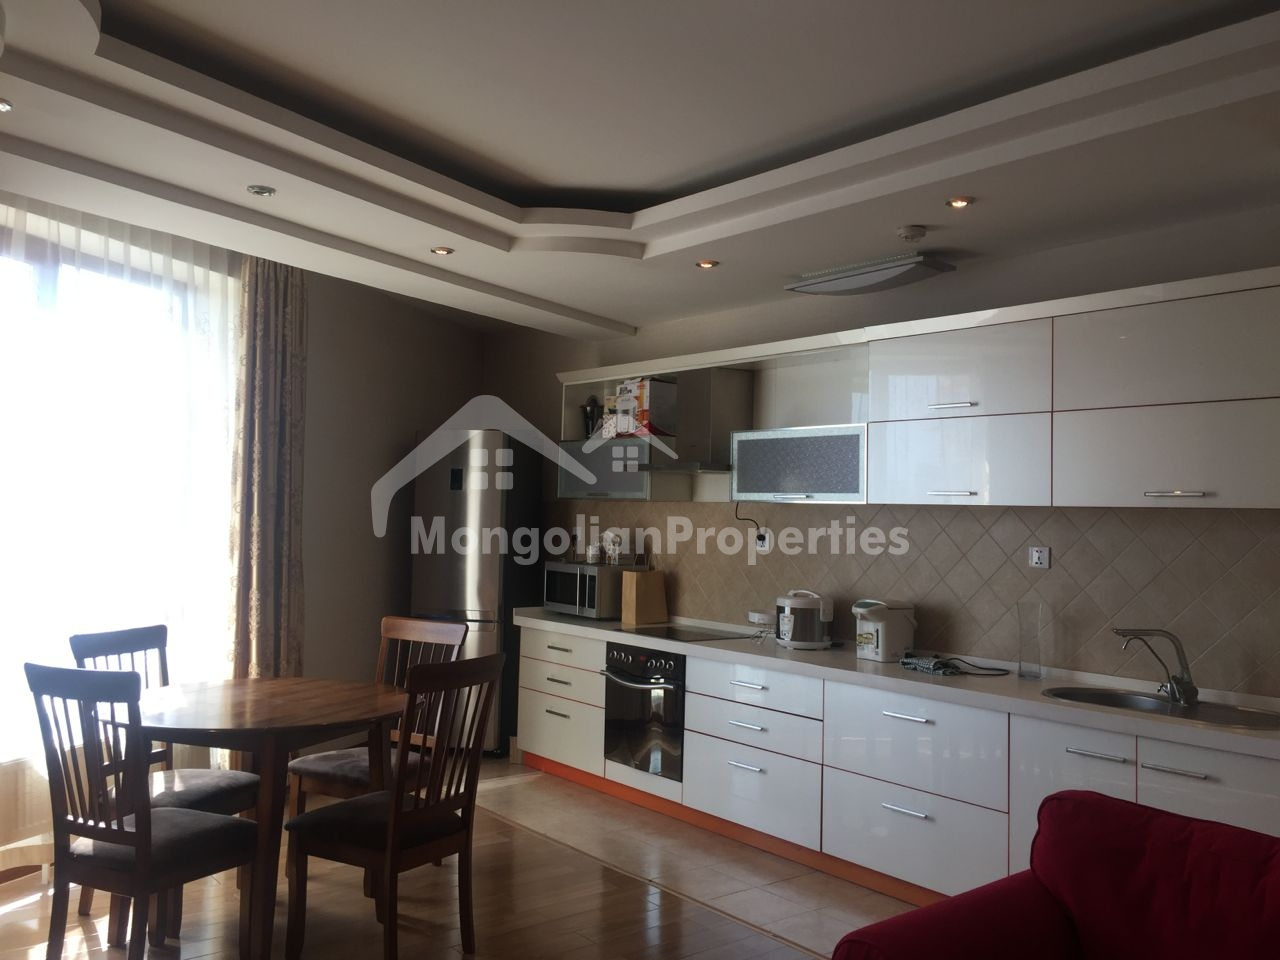 Rented 2 bedroom apartment is for sale just next to the Main Square!